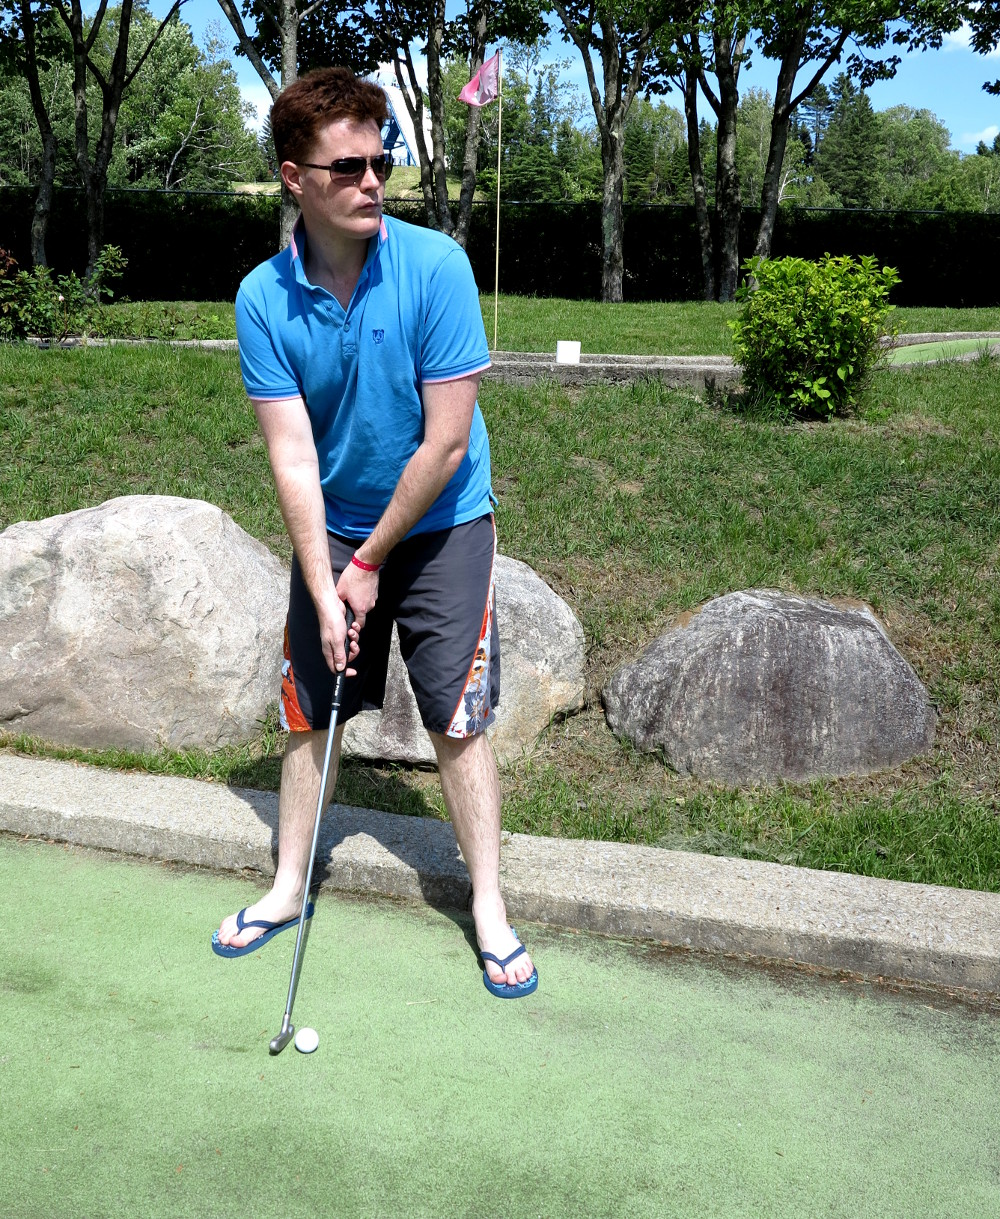 Dave playing mini golf at Village Vacances Valcartier Double-Barrelled Travel